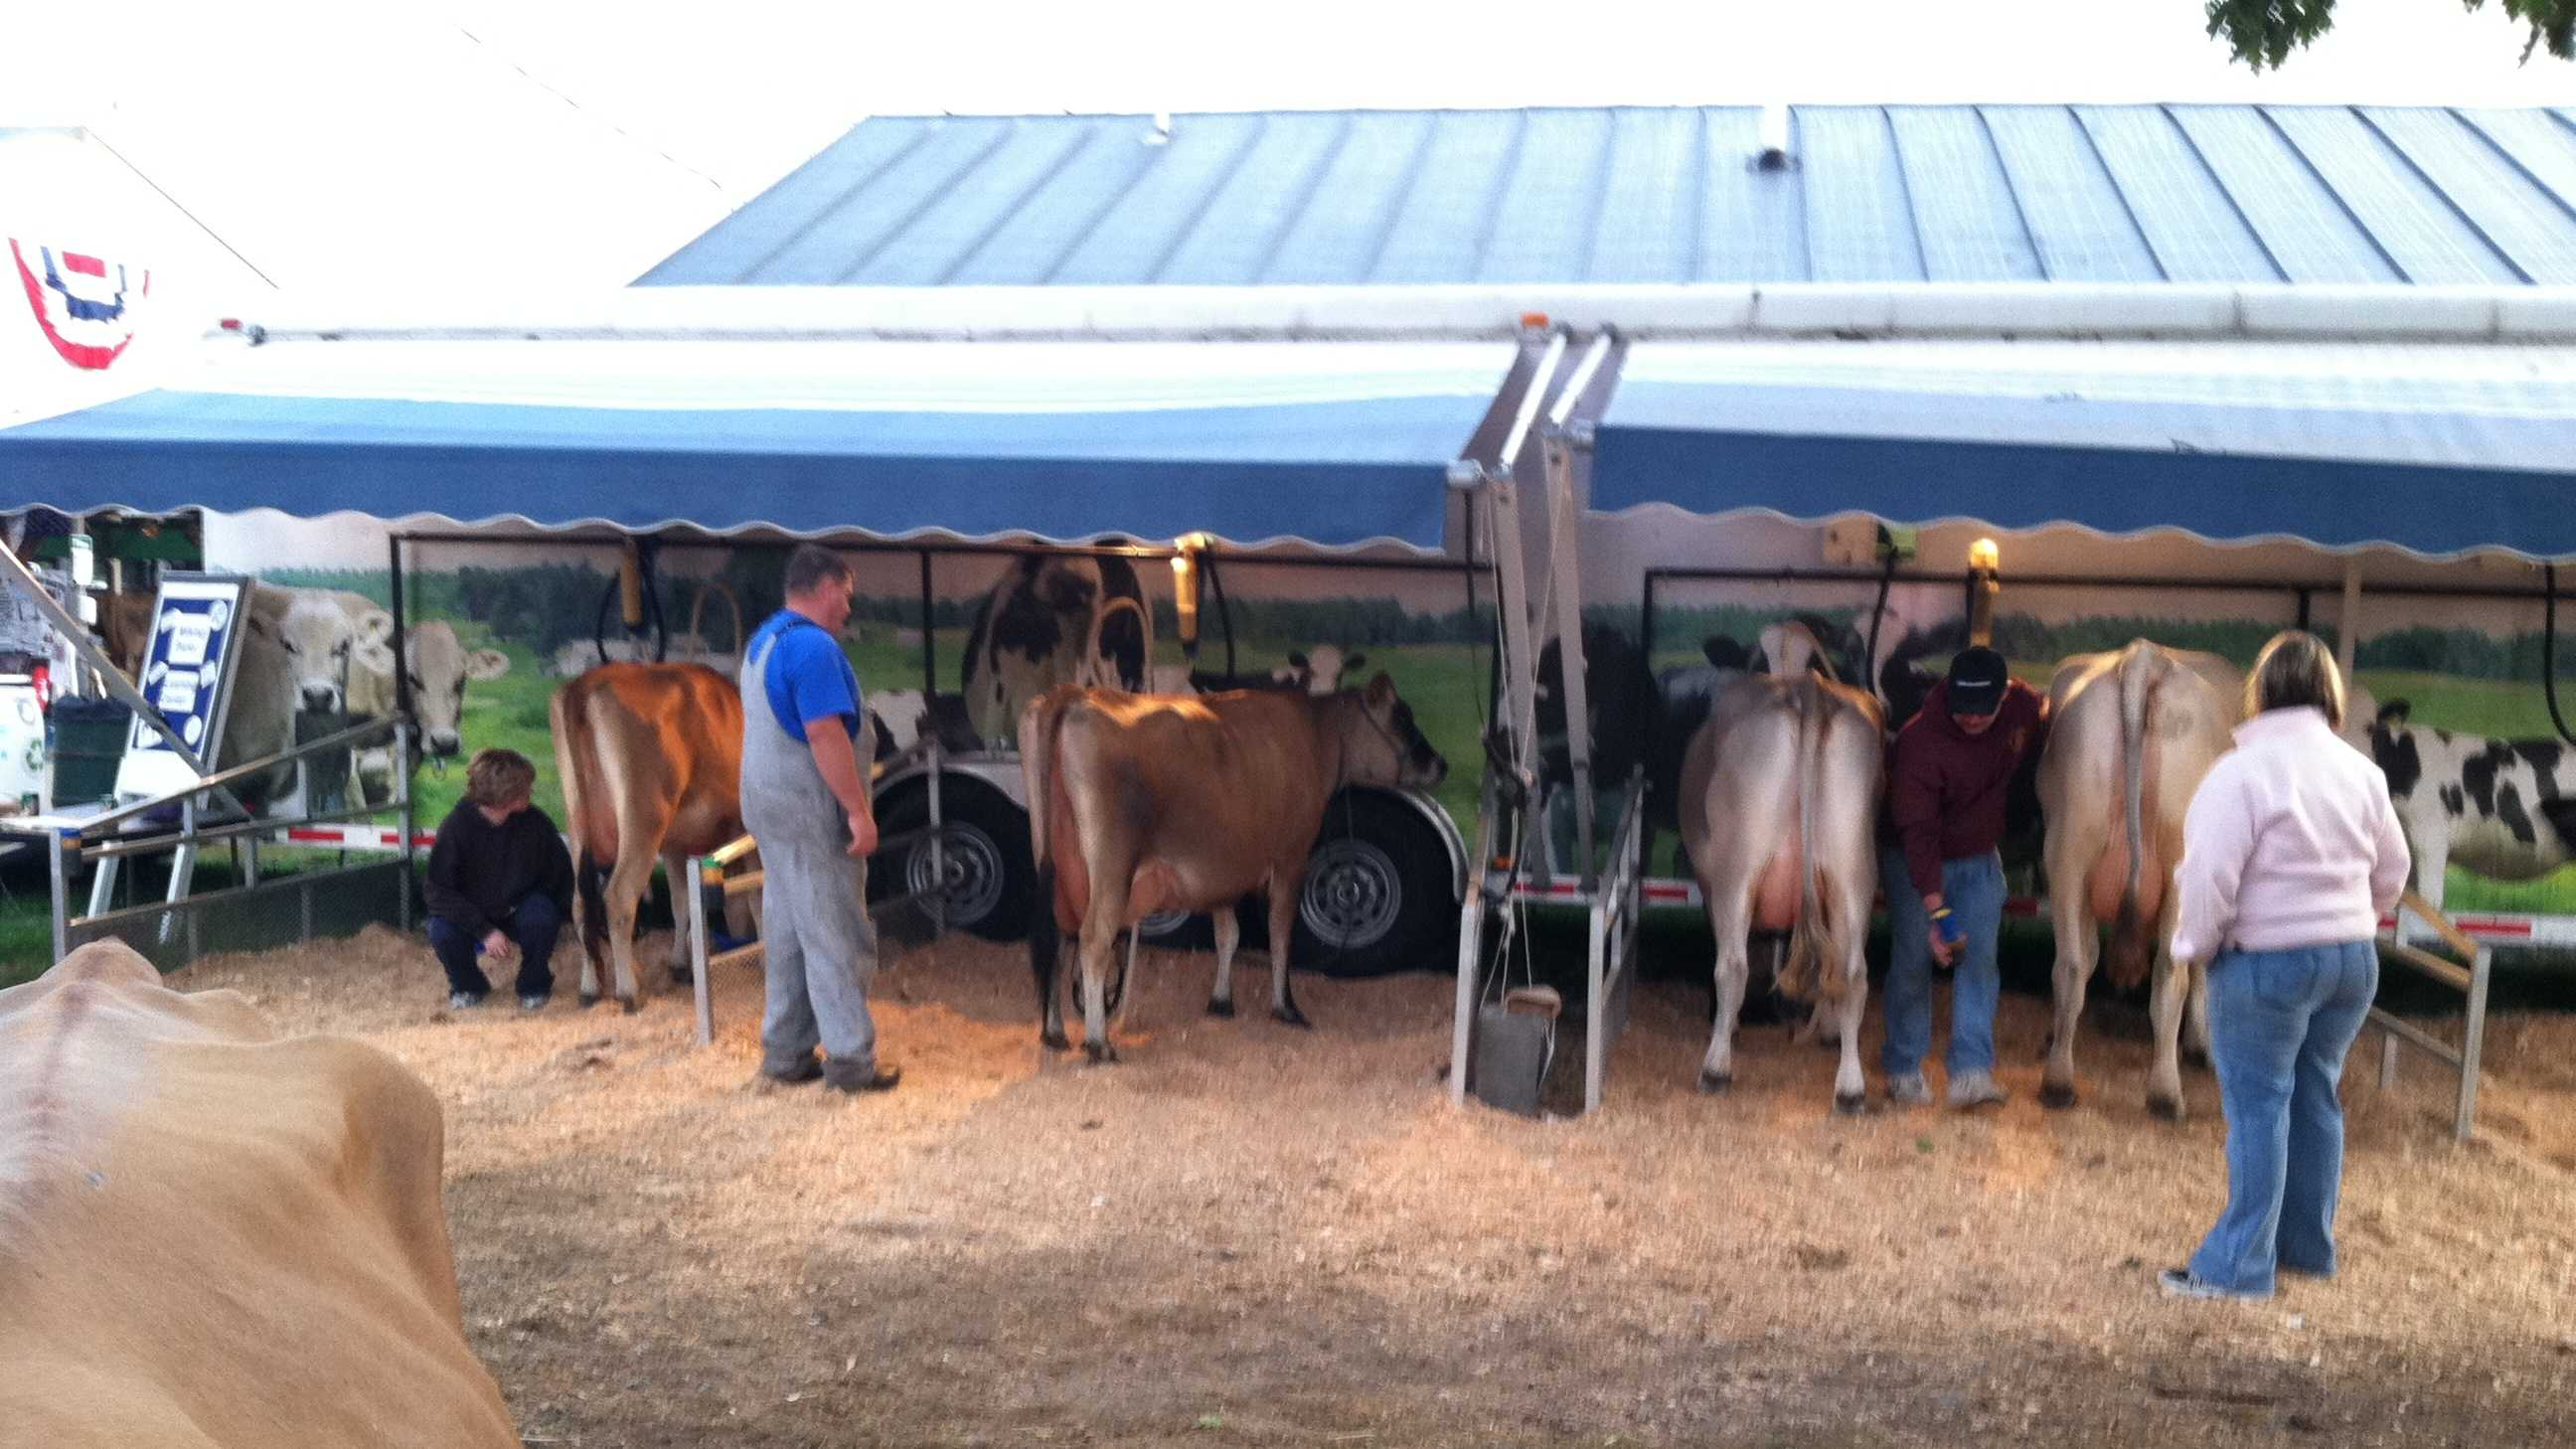 Sunday's events included 4-H Beef Show